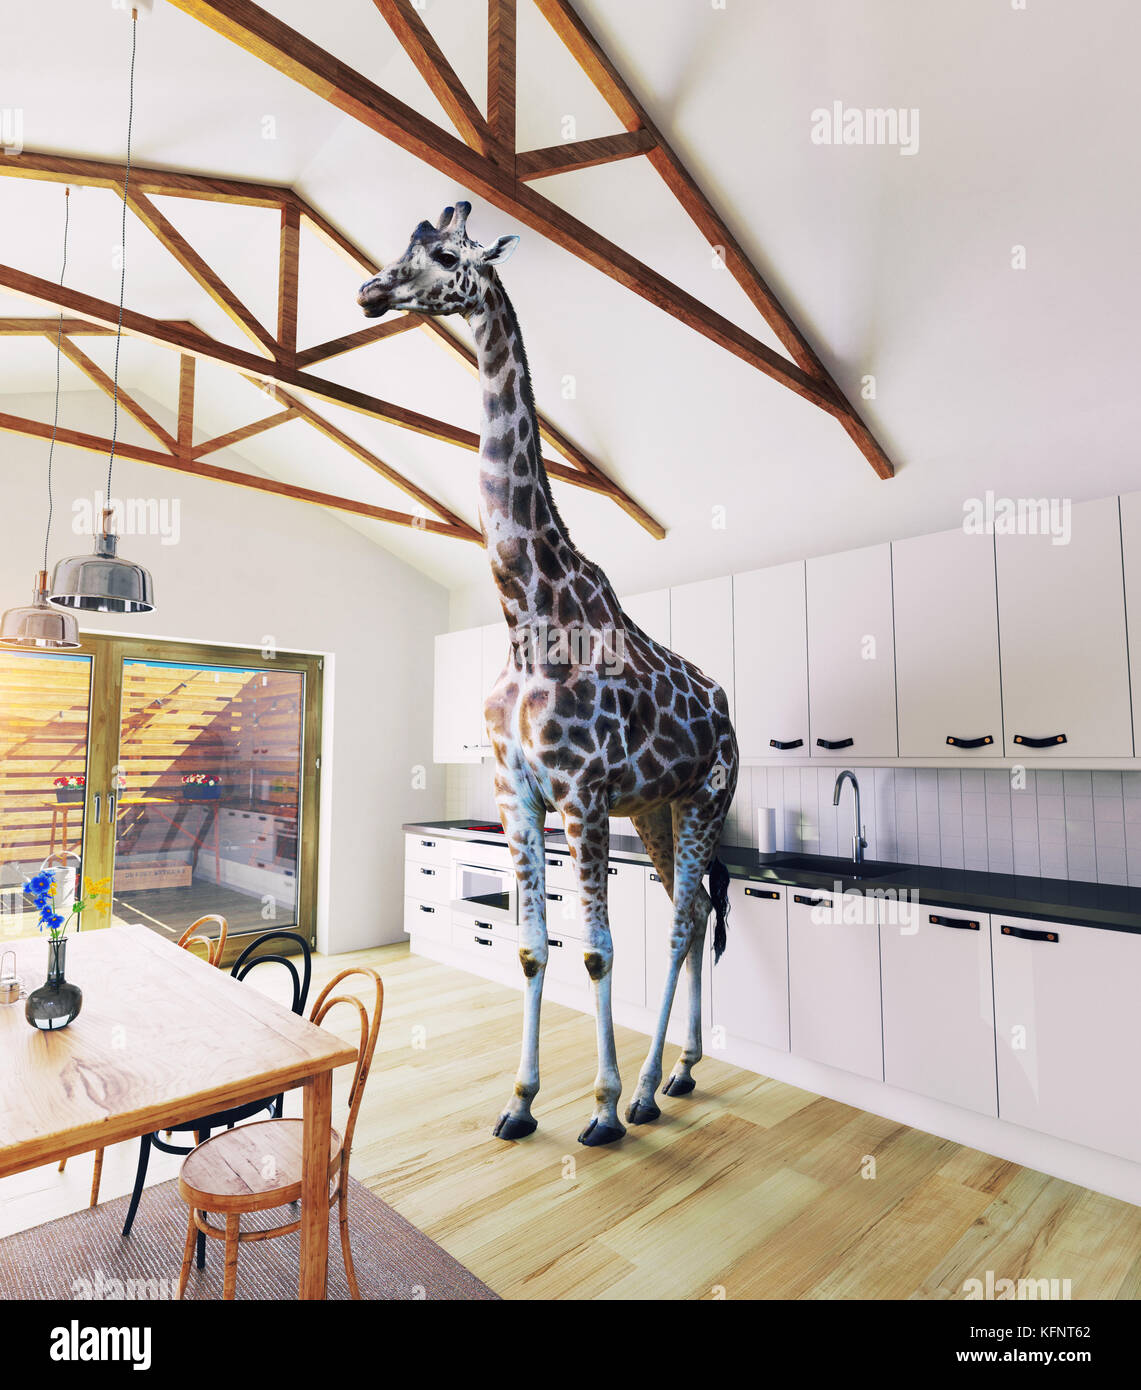 Giraffe in the attic window. 3d rendering elements and photo mixed concept. - Stock Image